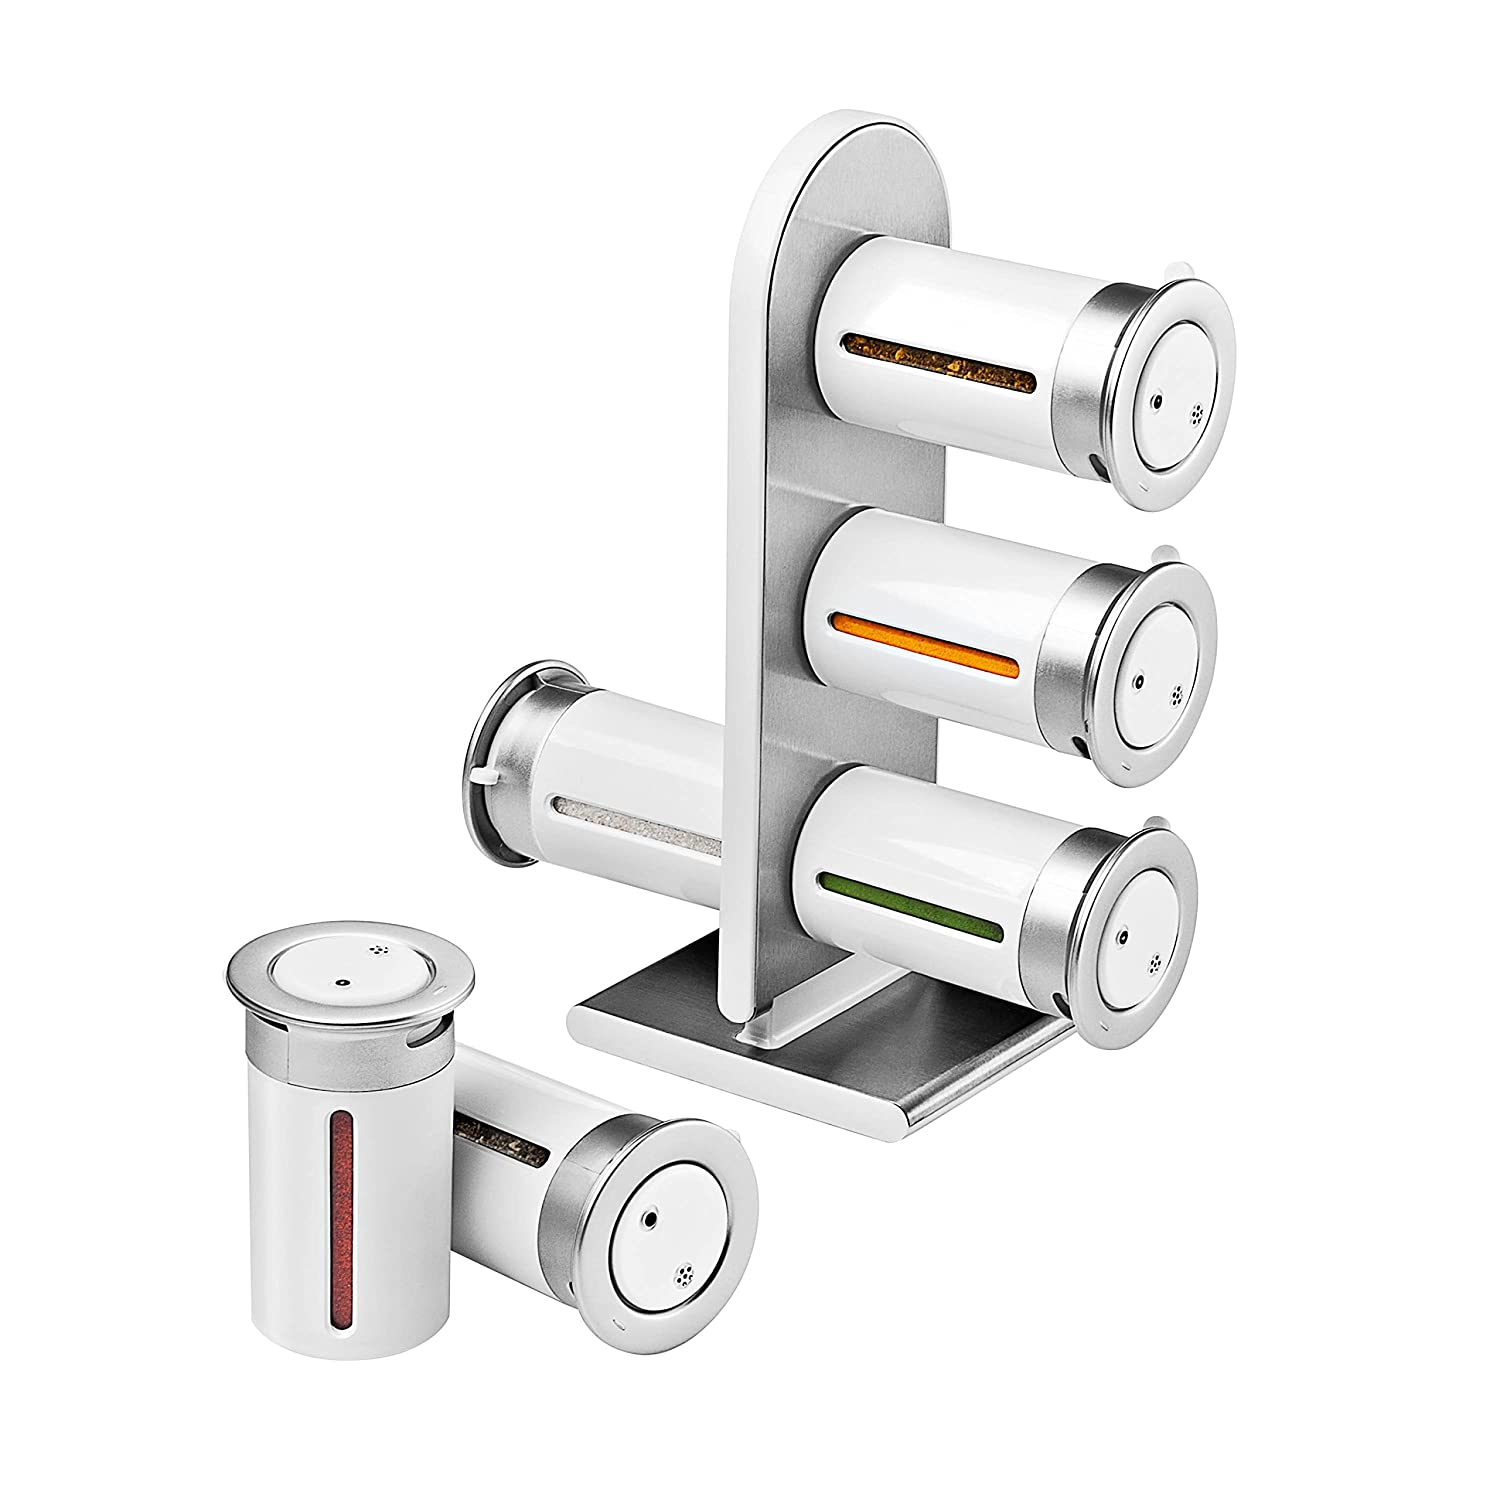 ZEVRO Magnetic Spice Stand - portaspezie, 6 Canisters KCH-06096